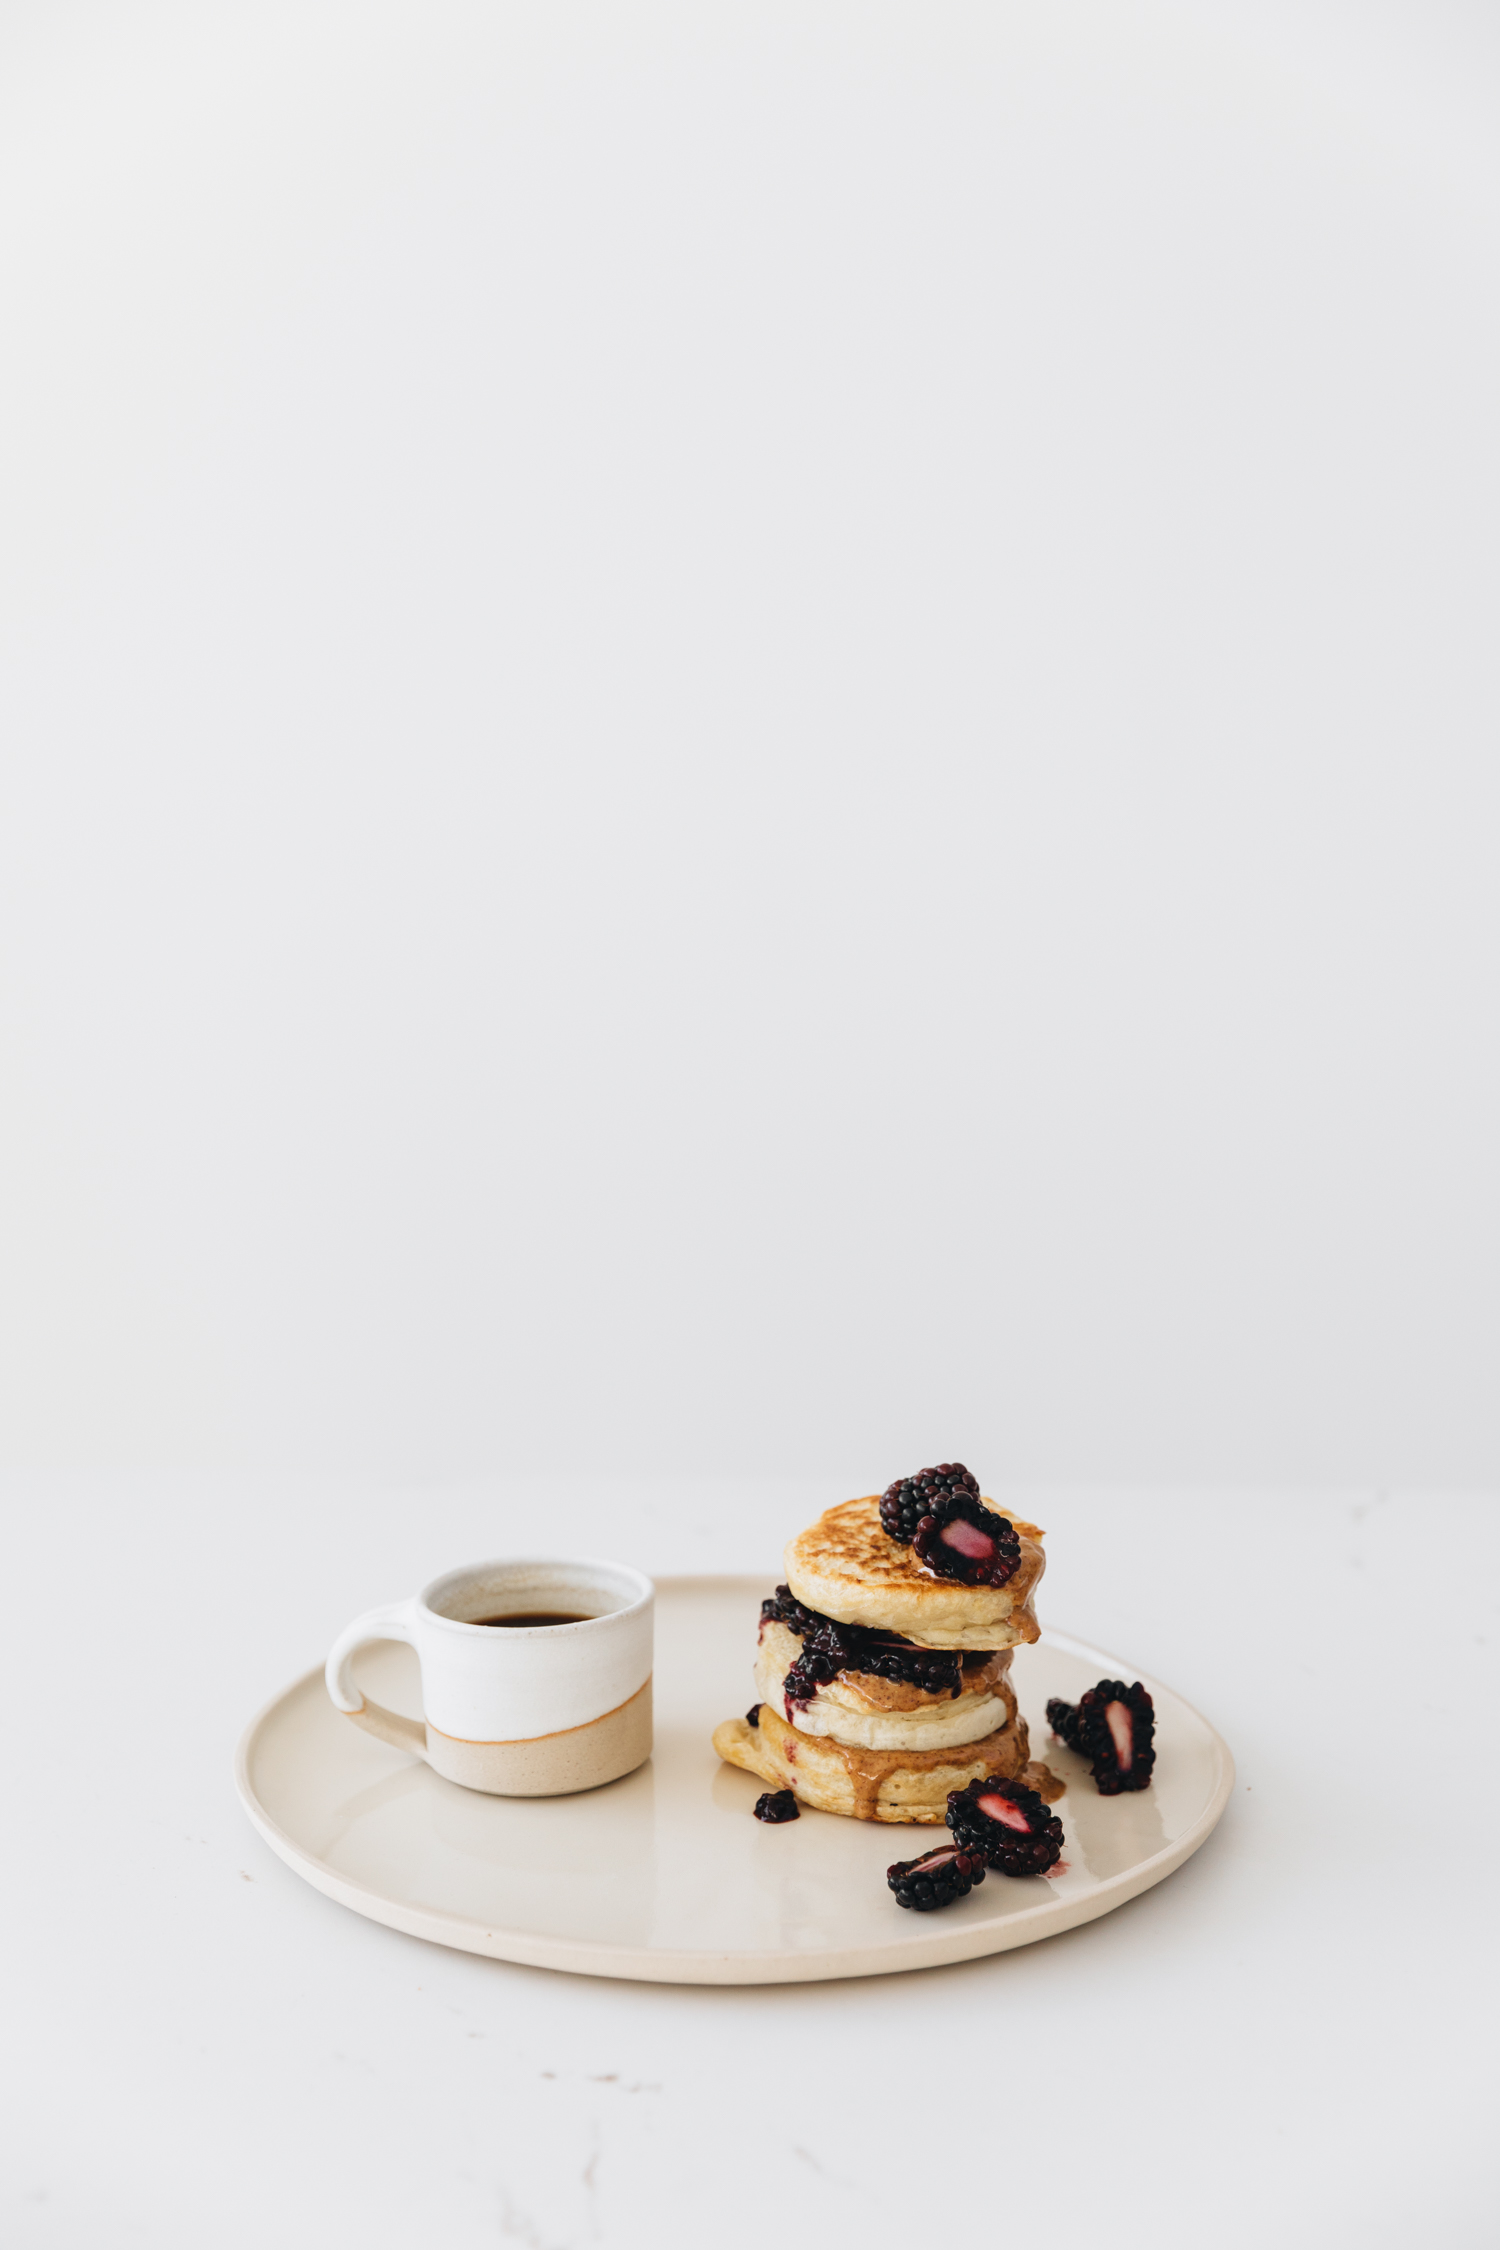 Crumpet with nut butter and blackberries